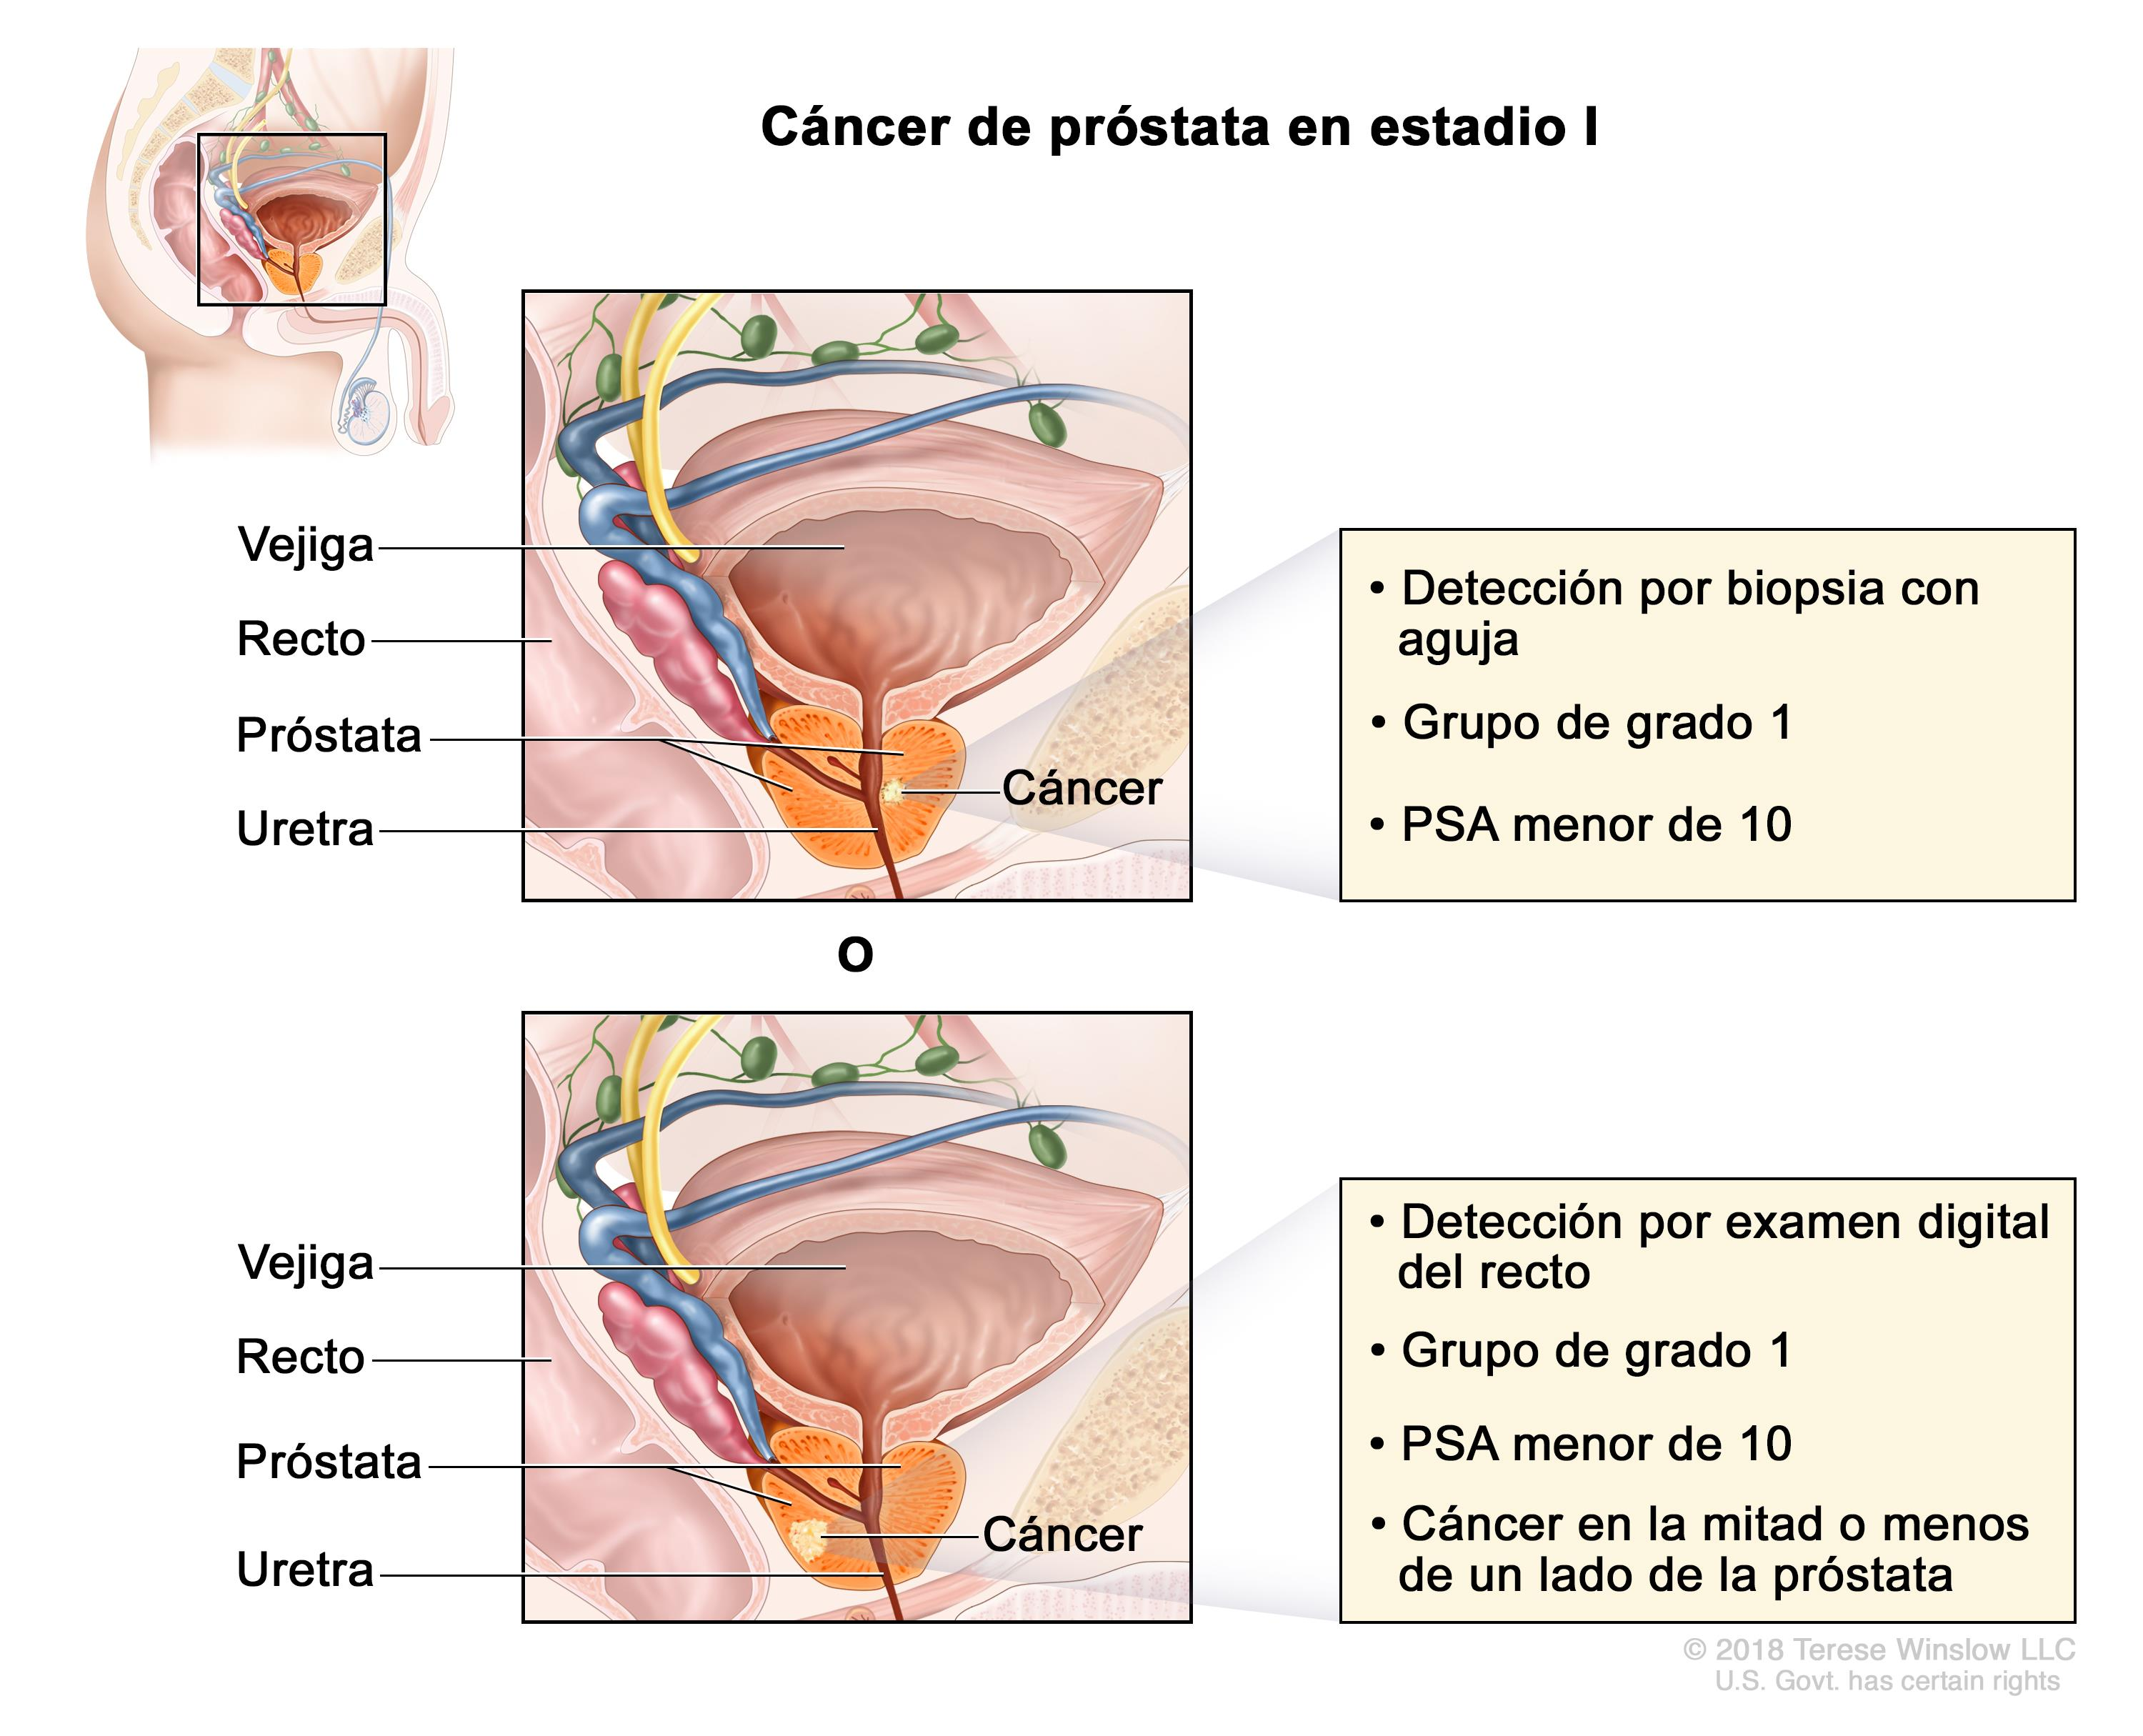 cancer de prostata estadio 4 helmintox instrukcija